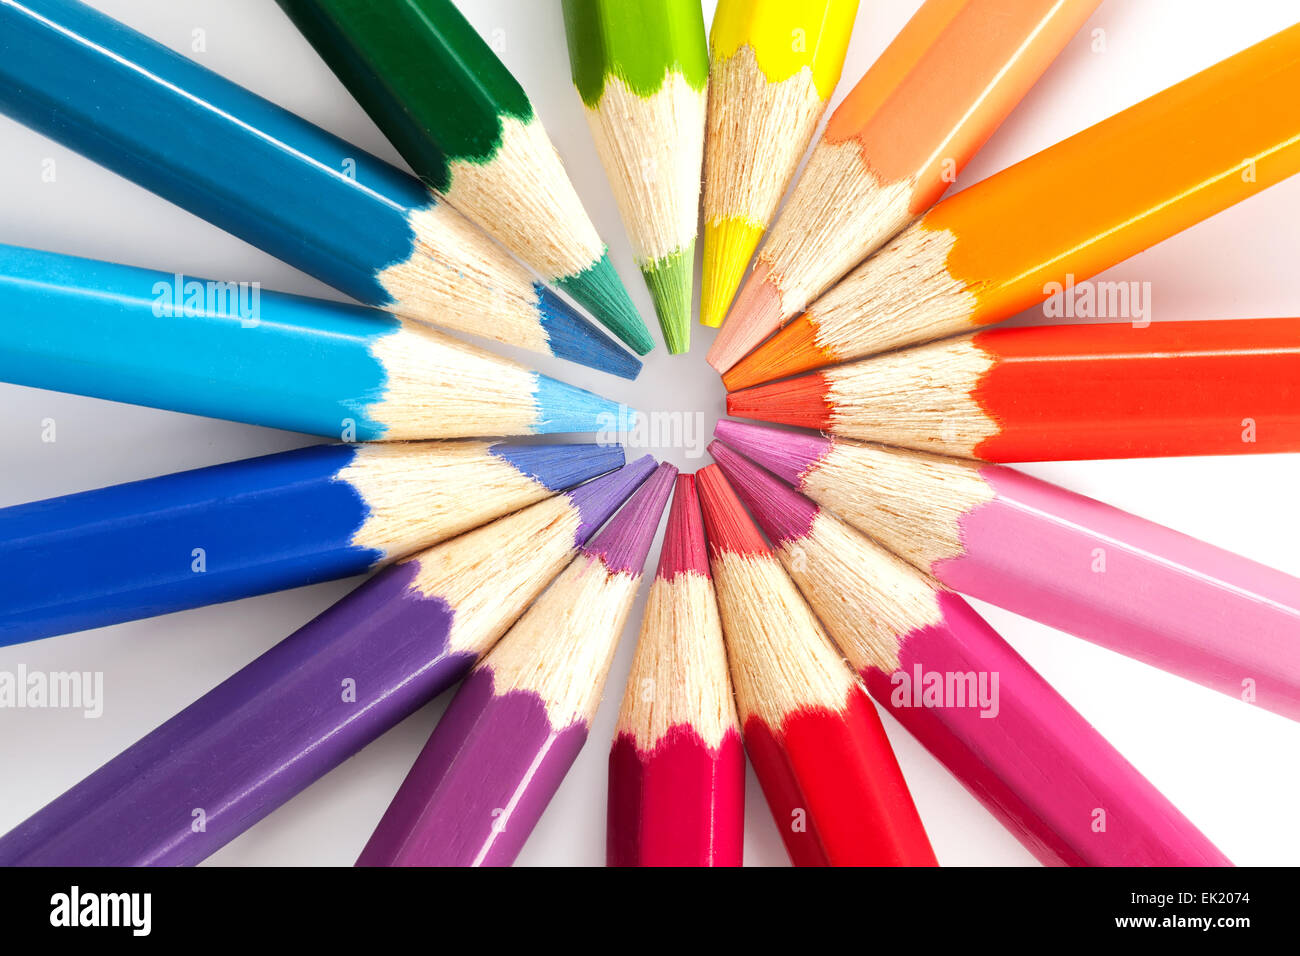 Color pencils in arrange in color wheel colors on white background - Stock Image